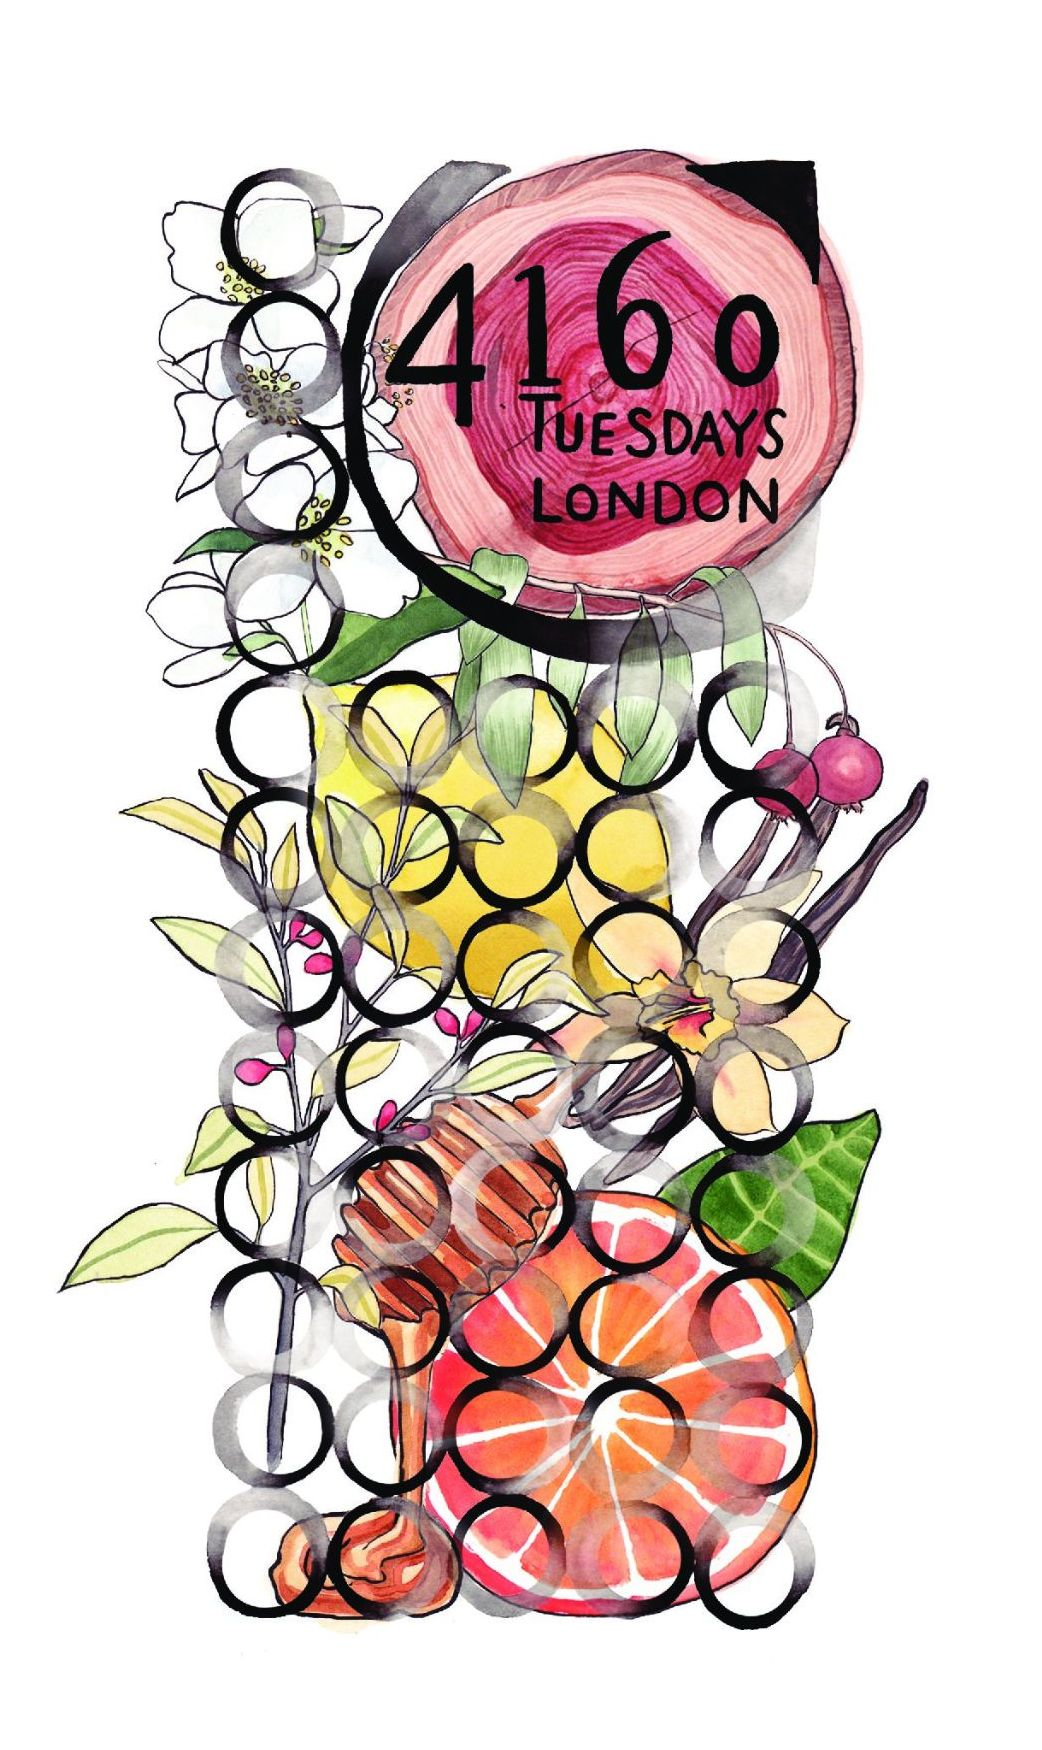 Stylised graphic containing flowers, fruit and honey.